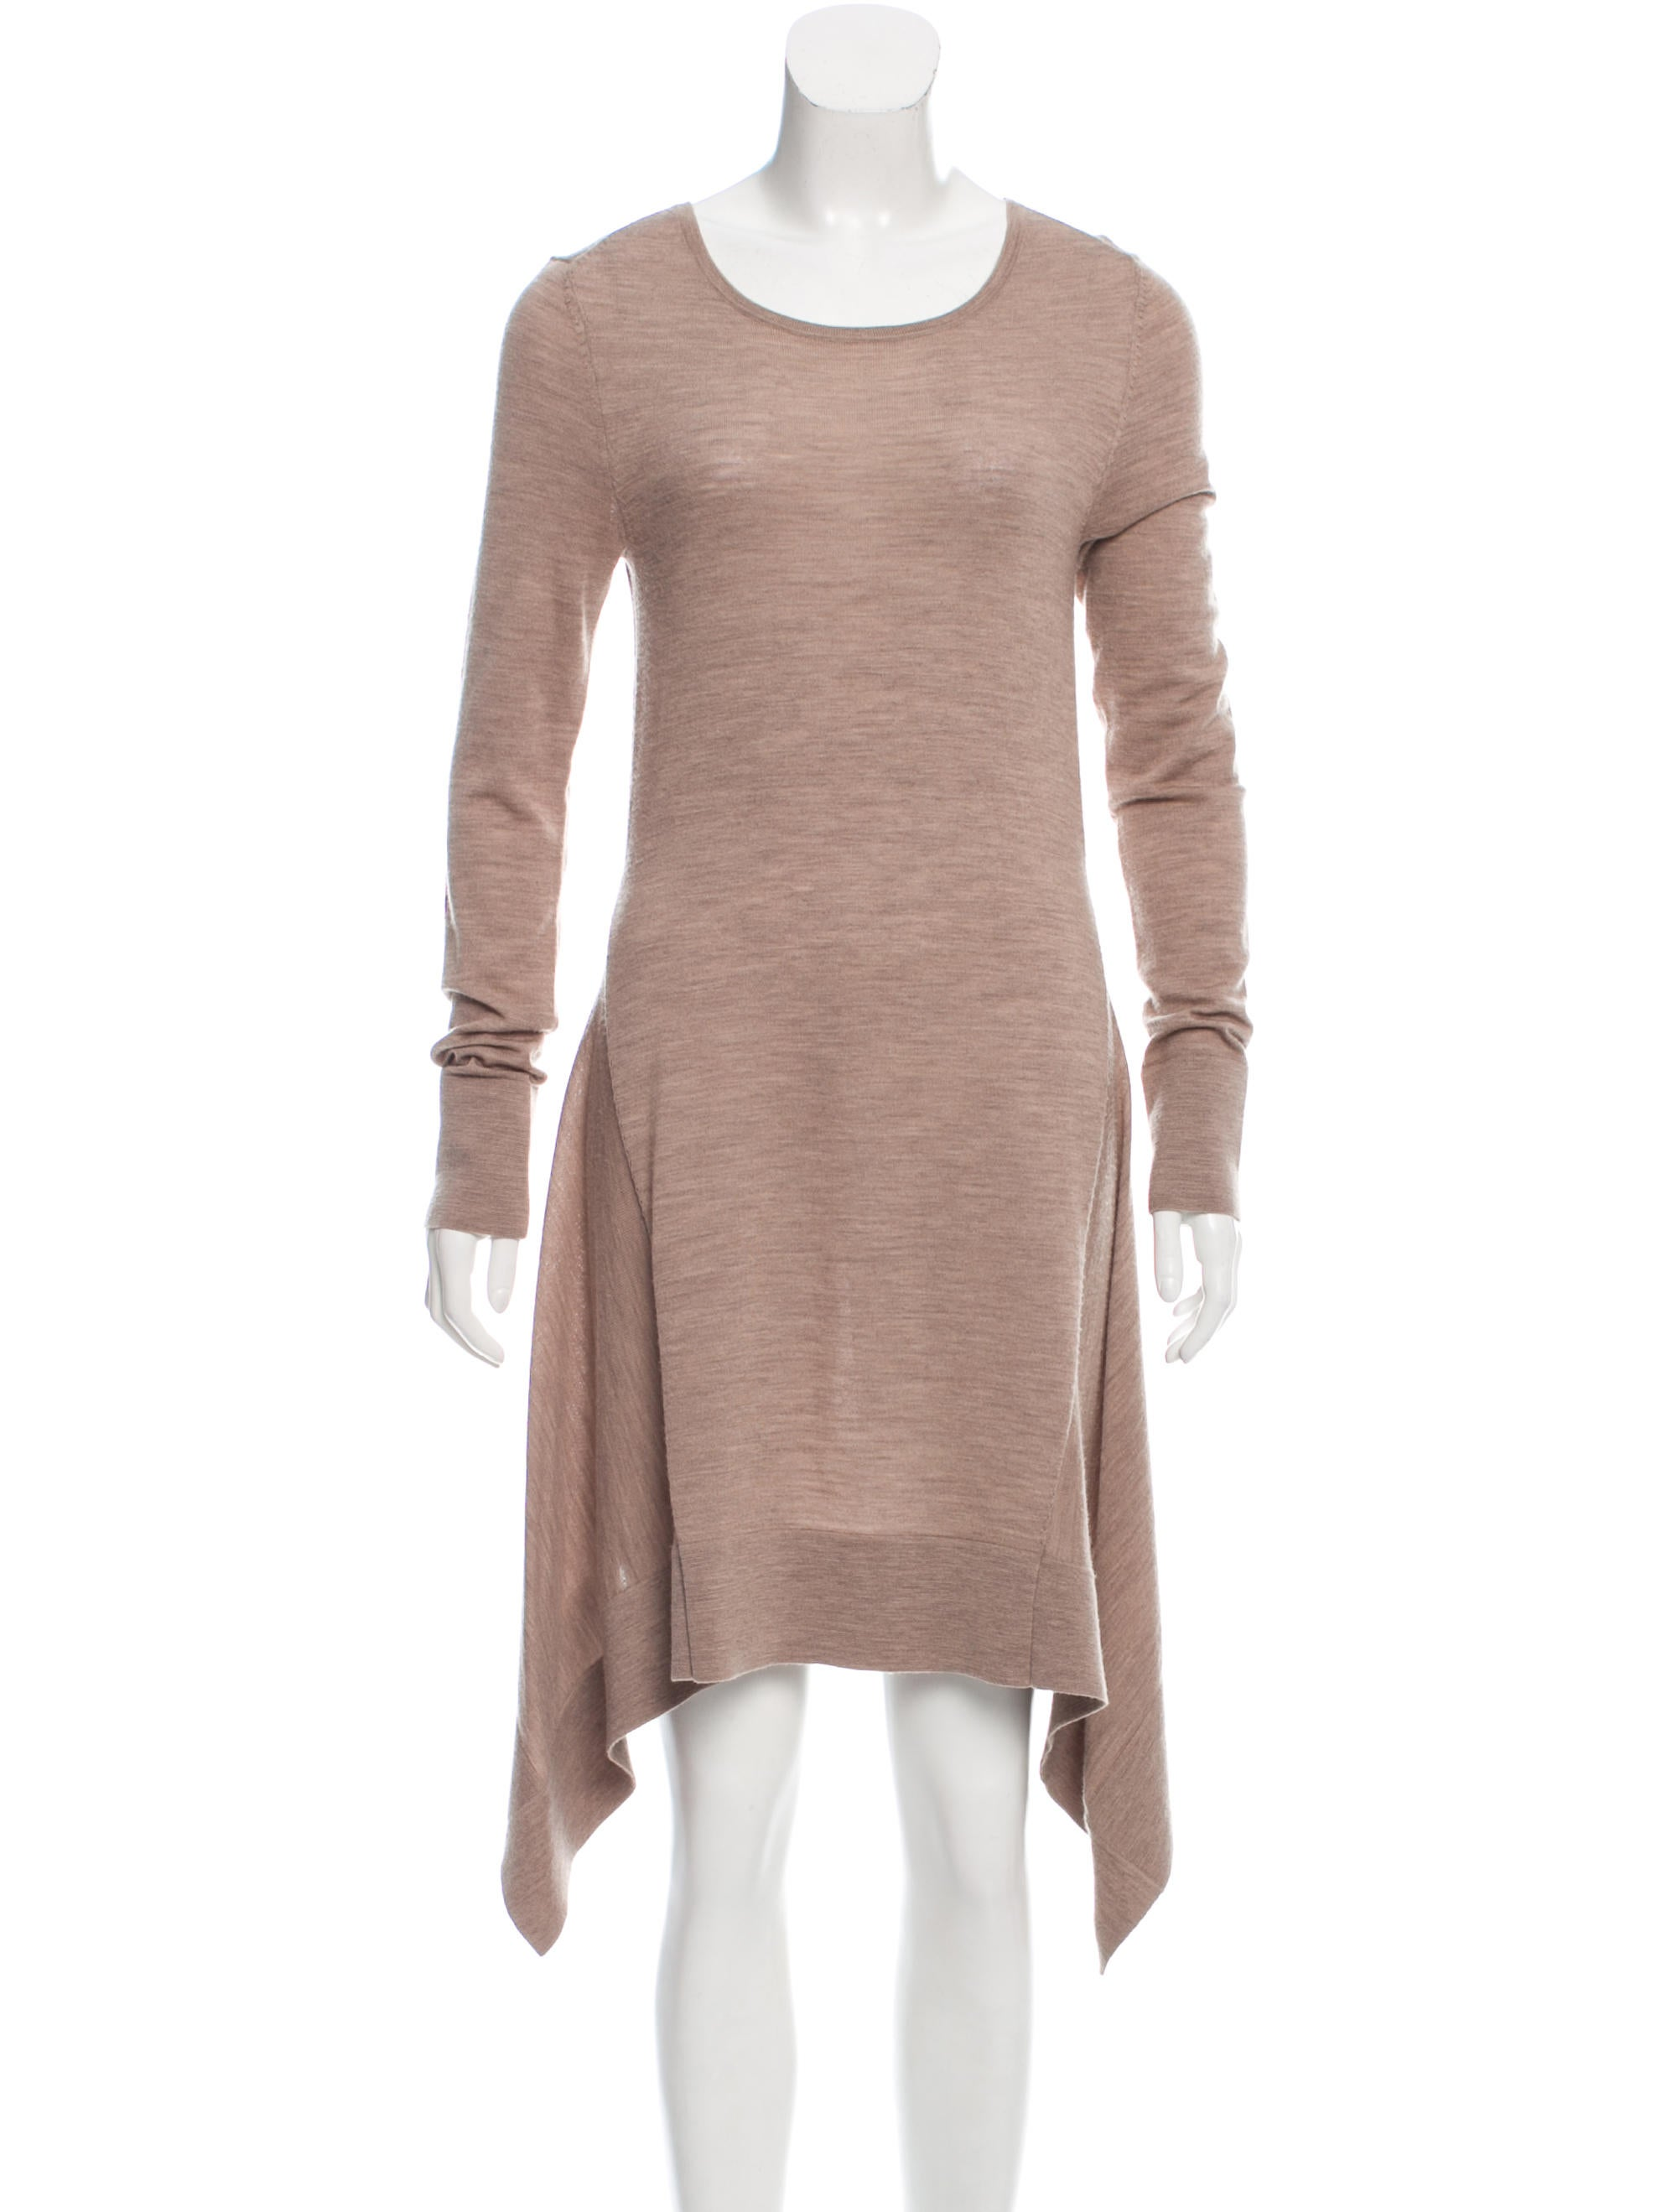 Thakoon Wool Sweater Dress - Clothing - WTHAK24832 | The RealReal